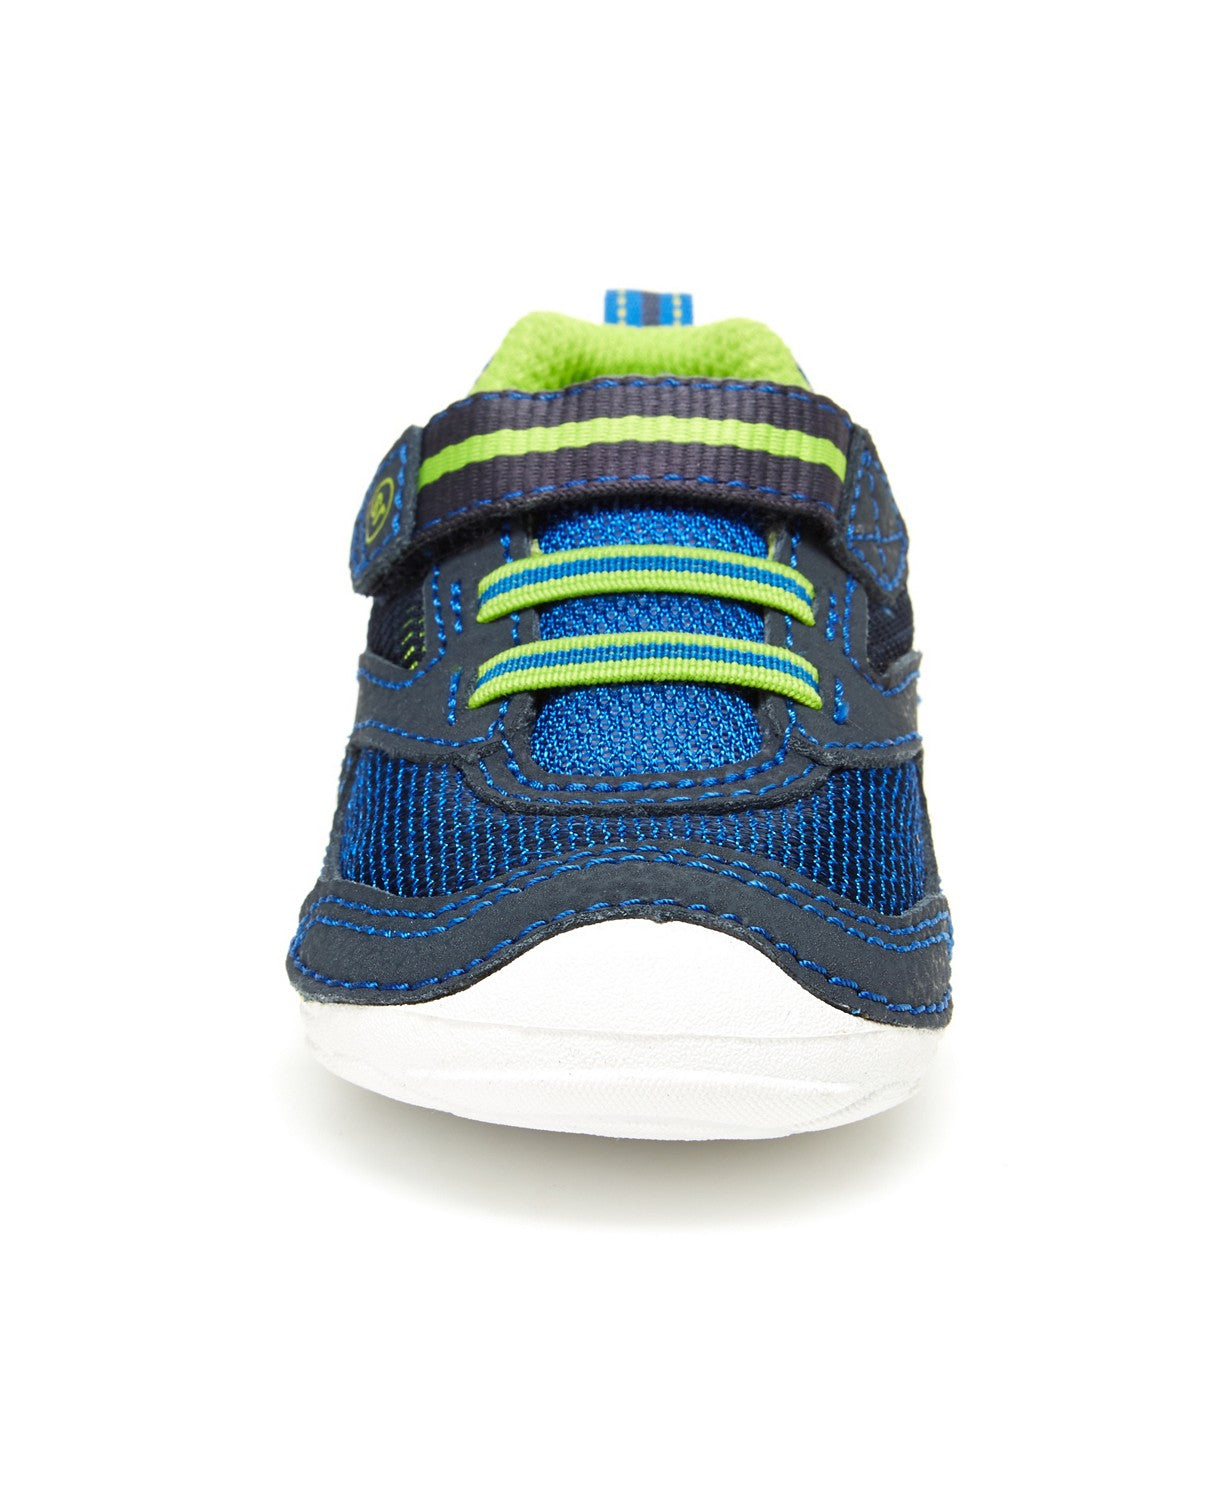 Stride Rite Soft Motion Adrian Sneaker - Navy/Lime